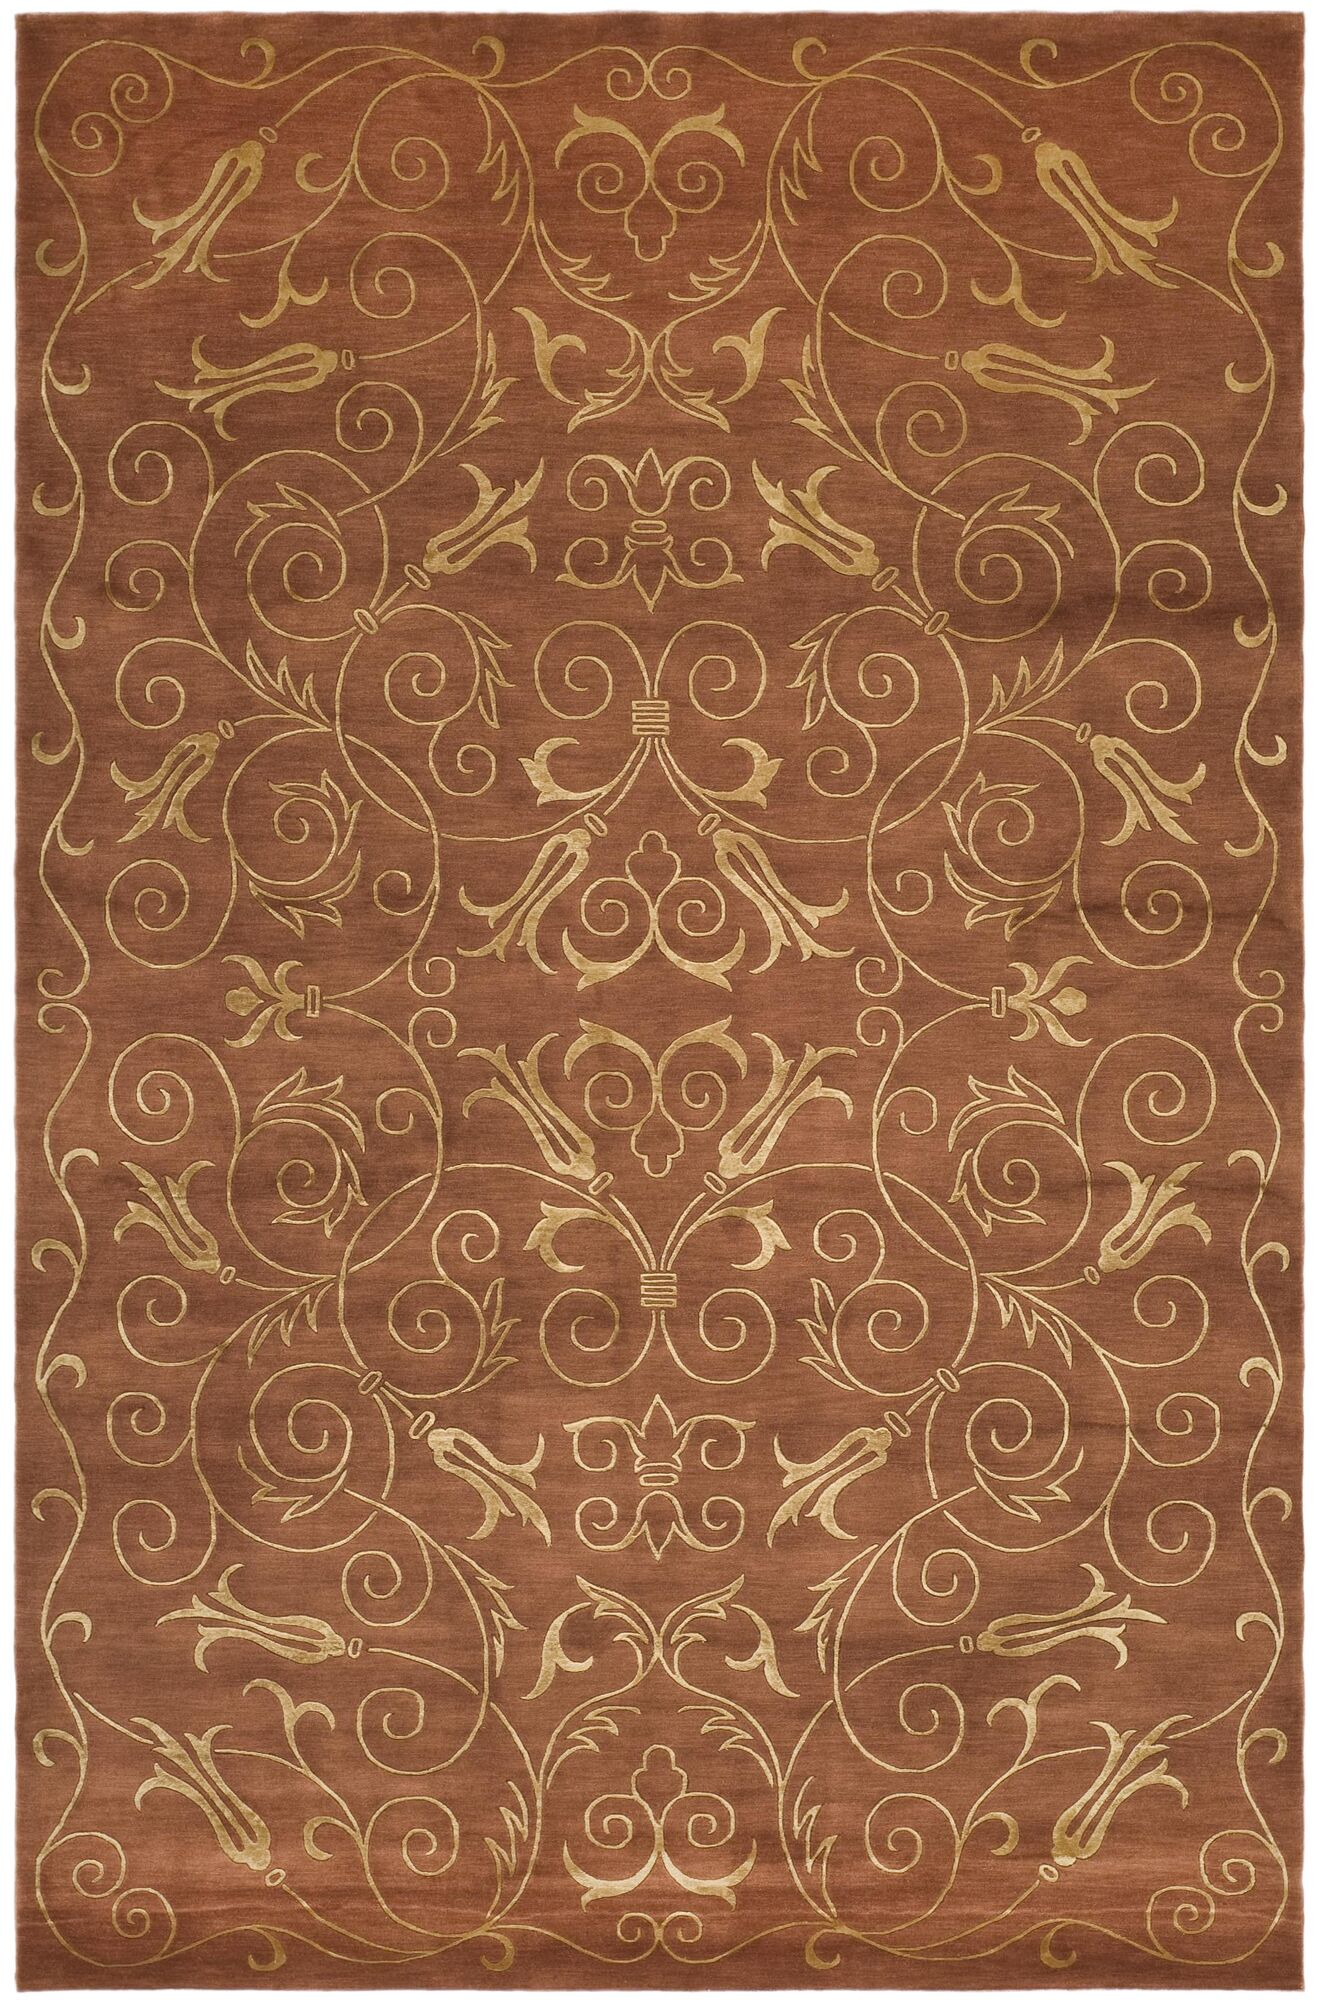 Echevarria hand knotted silk wool rust gold area rug rug size rectangle 8